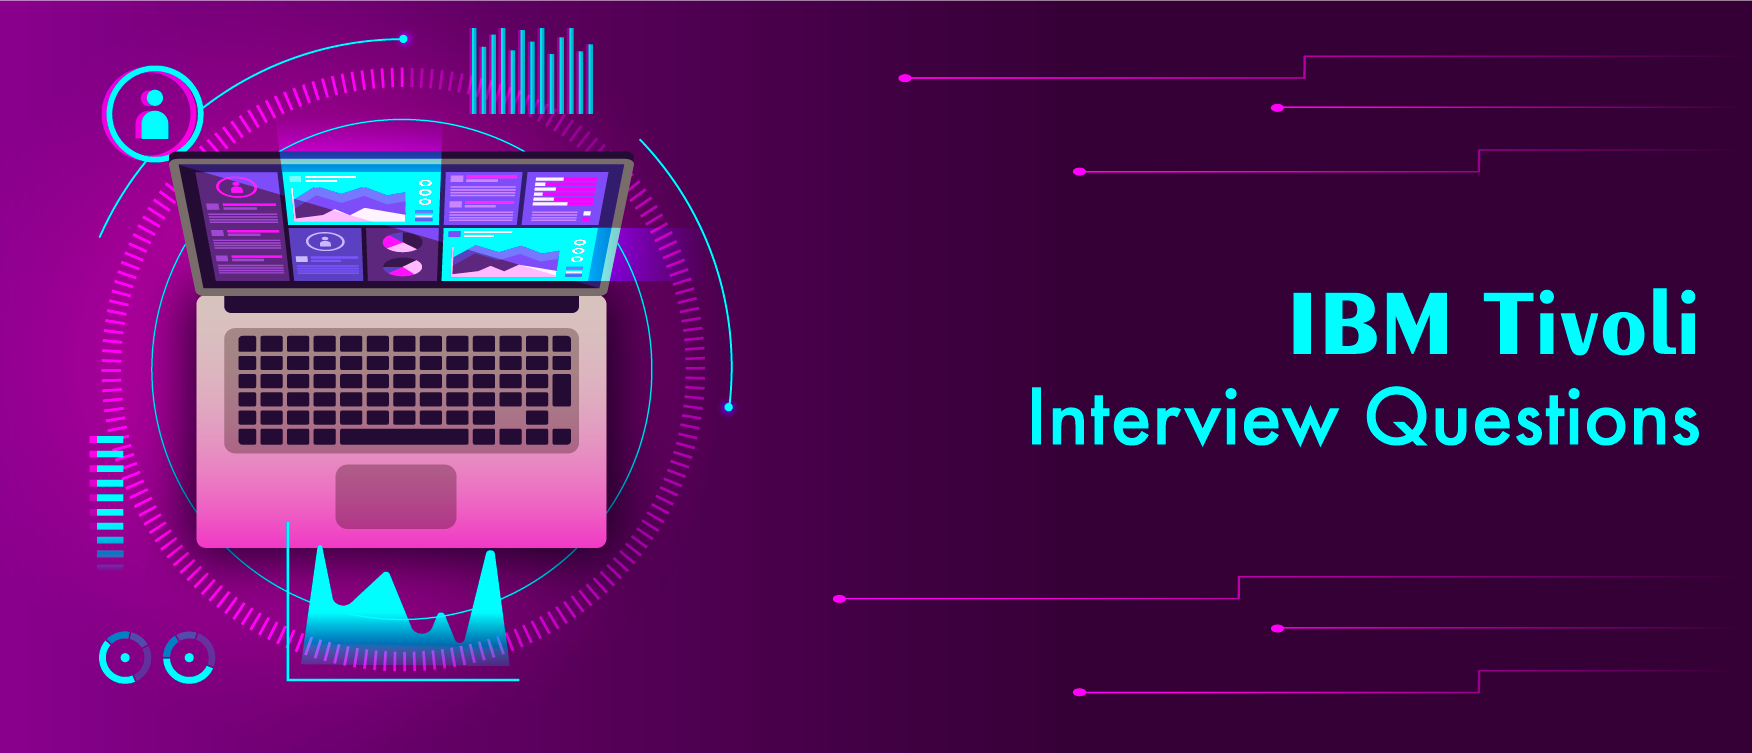 The Best IBM Tivoli Interview Questions [UPDATED] 2019